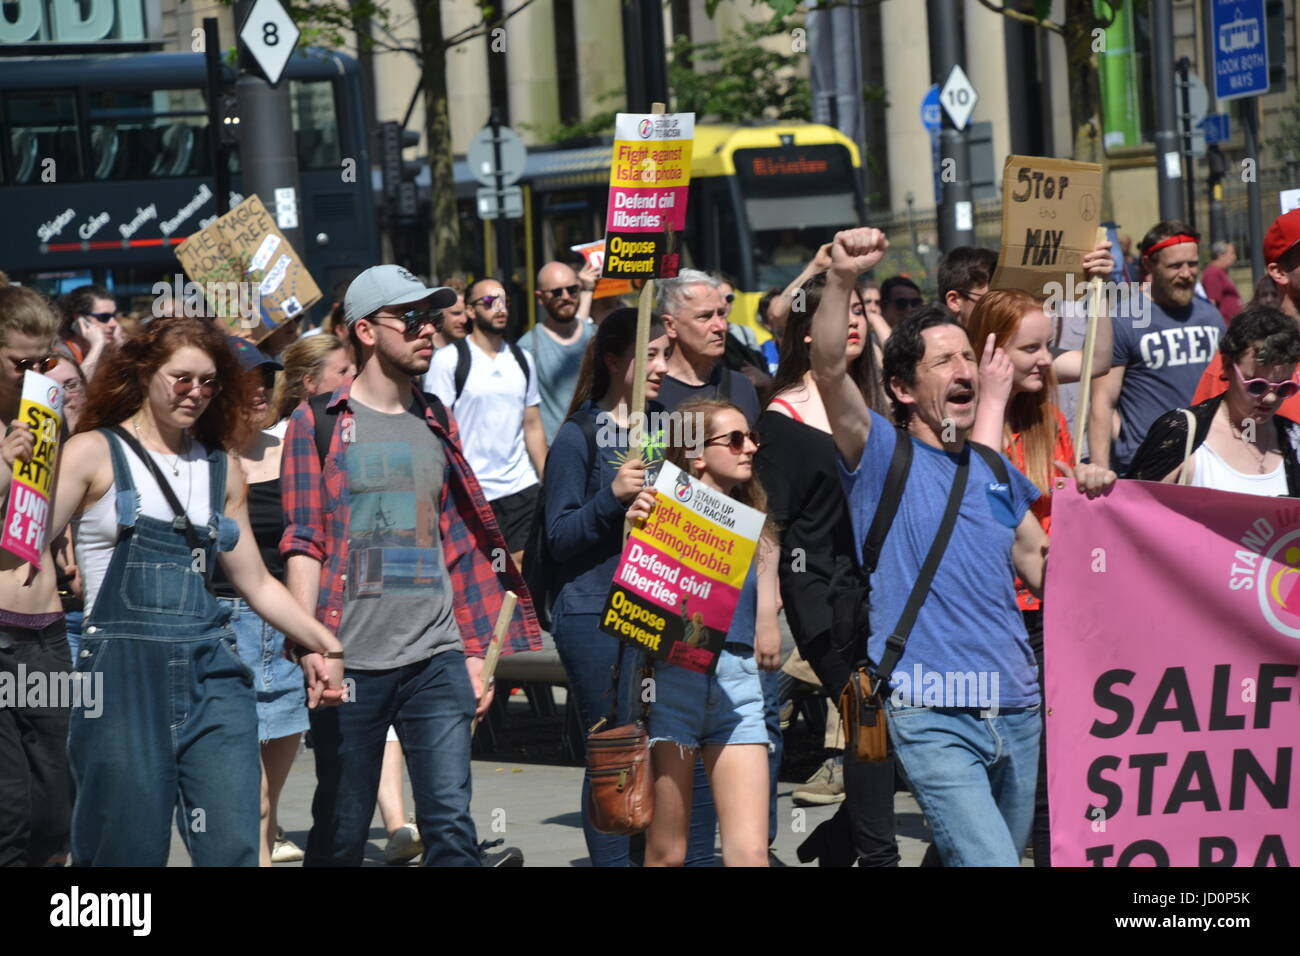 Manchester, UK. 17th June, 2017. Protestors take part in a march against the Tory-DUP government with placards and Stock Photo